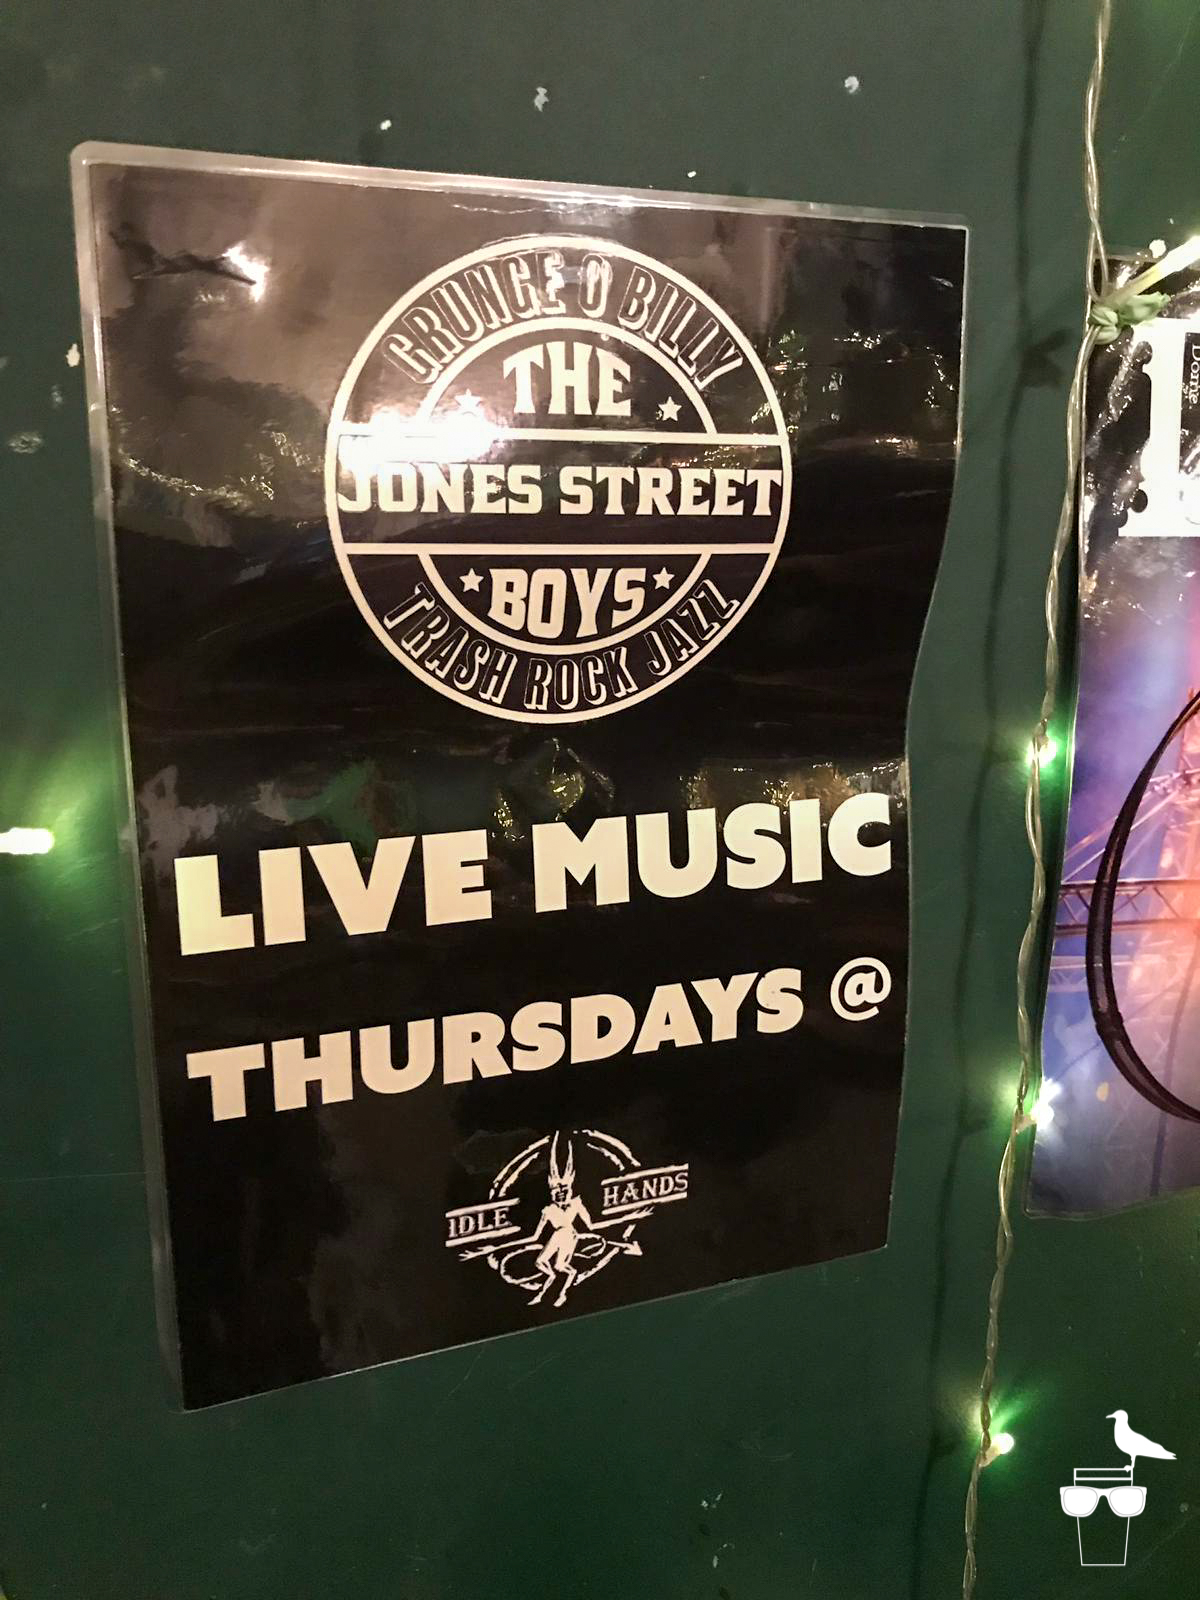 idle hands brighton the jones street boys live music thursdays poster